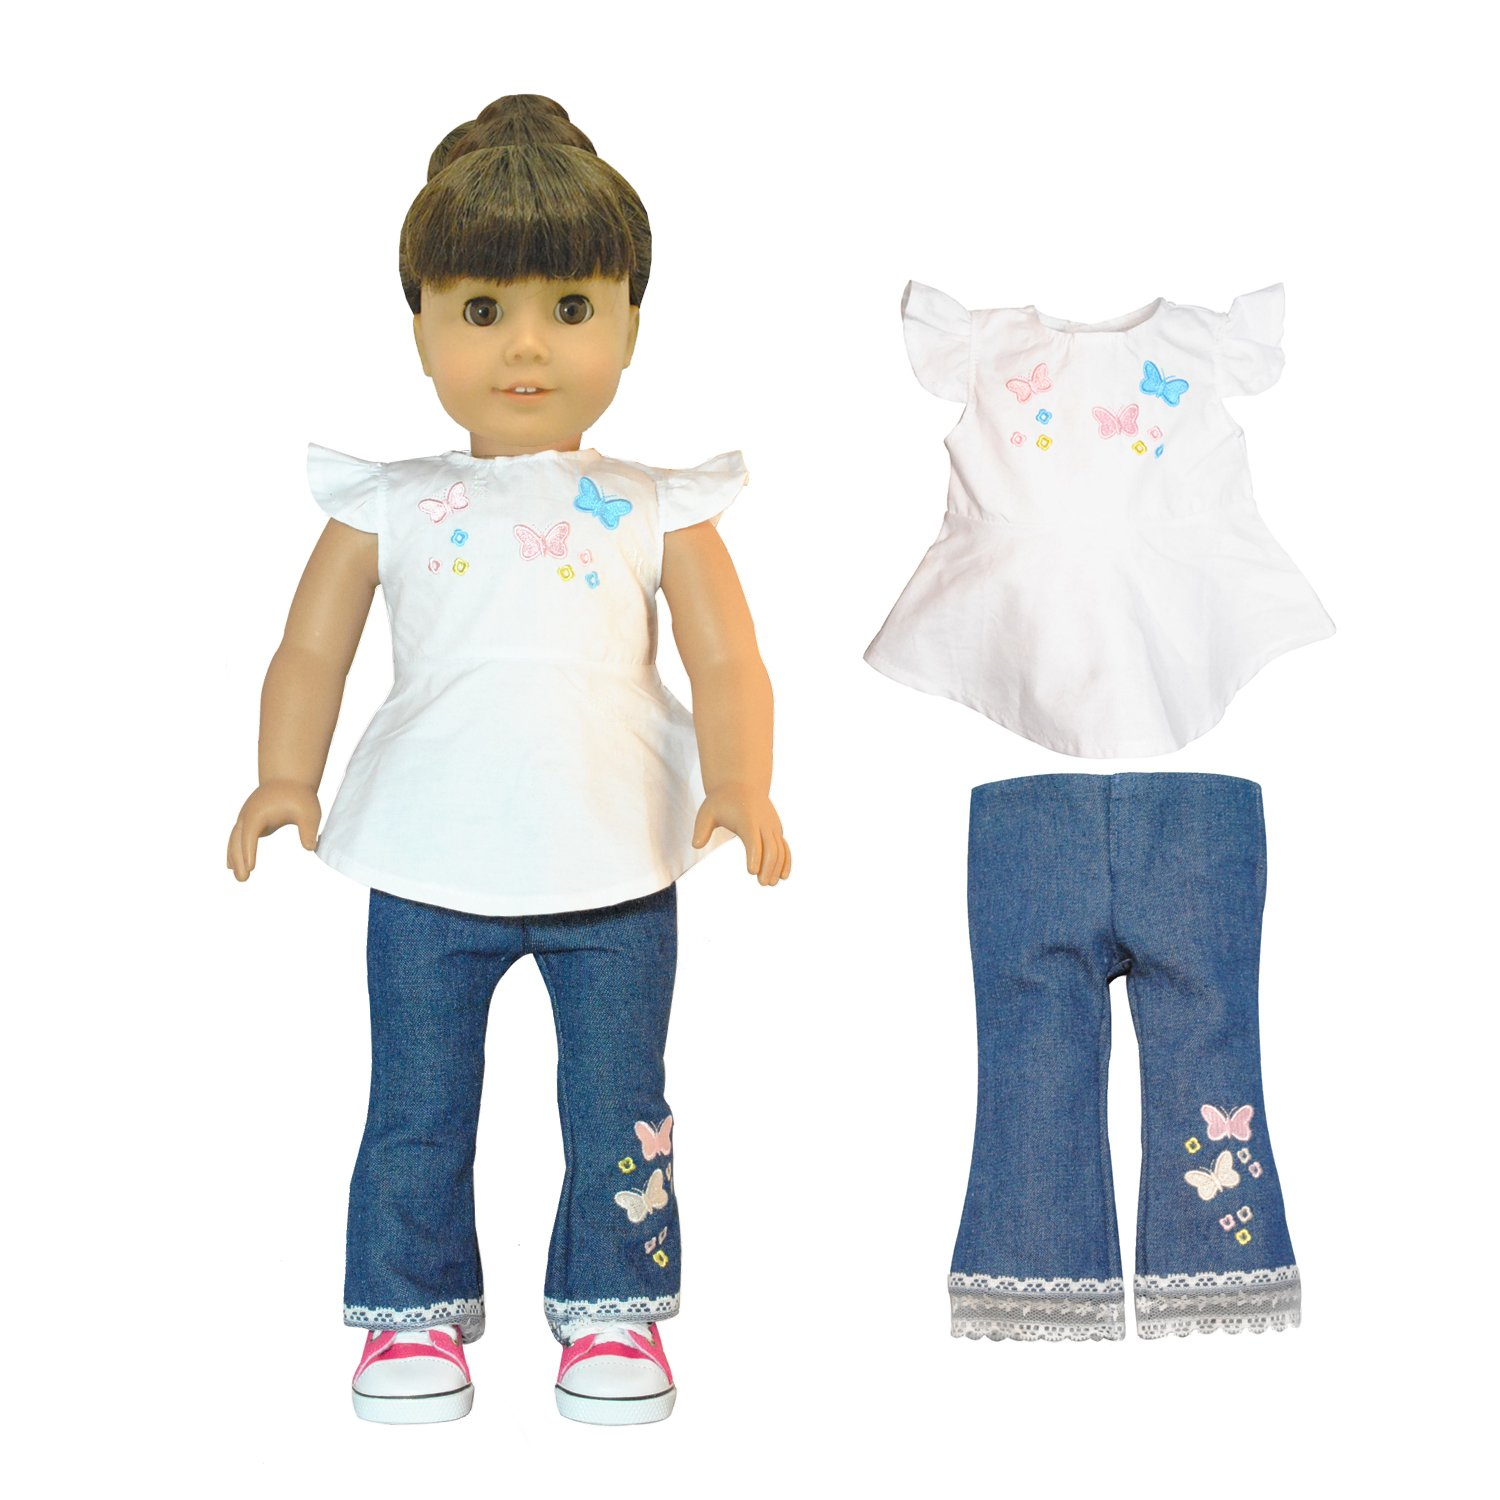 jeans american girl doll clothes